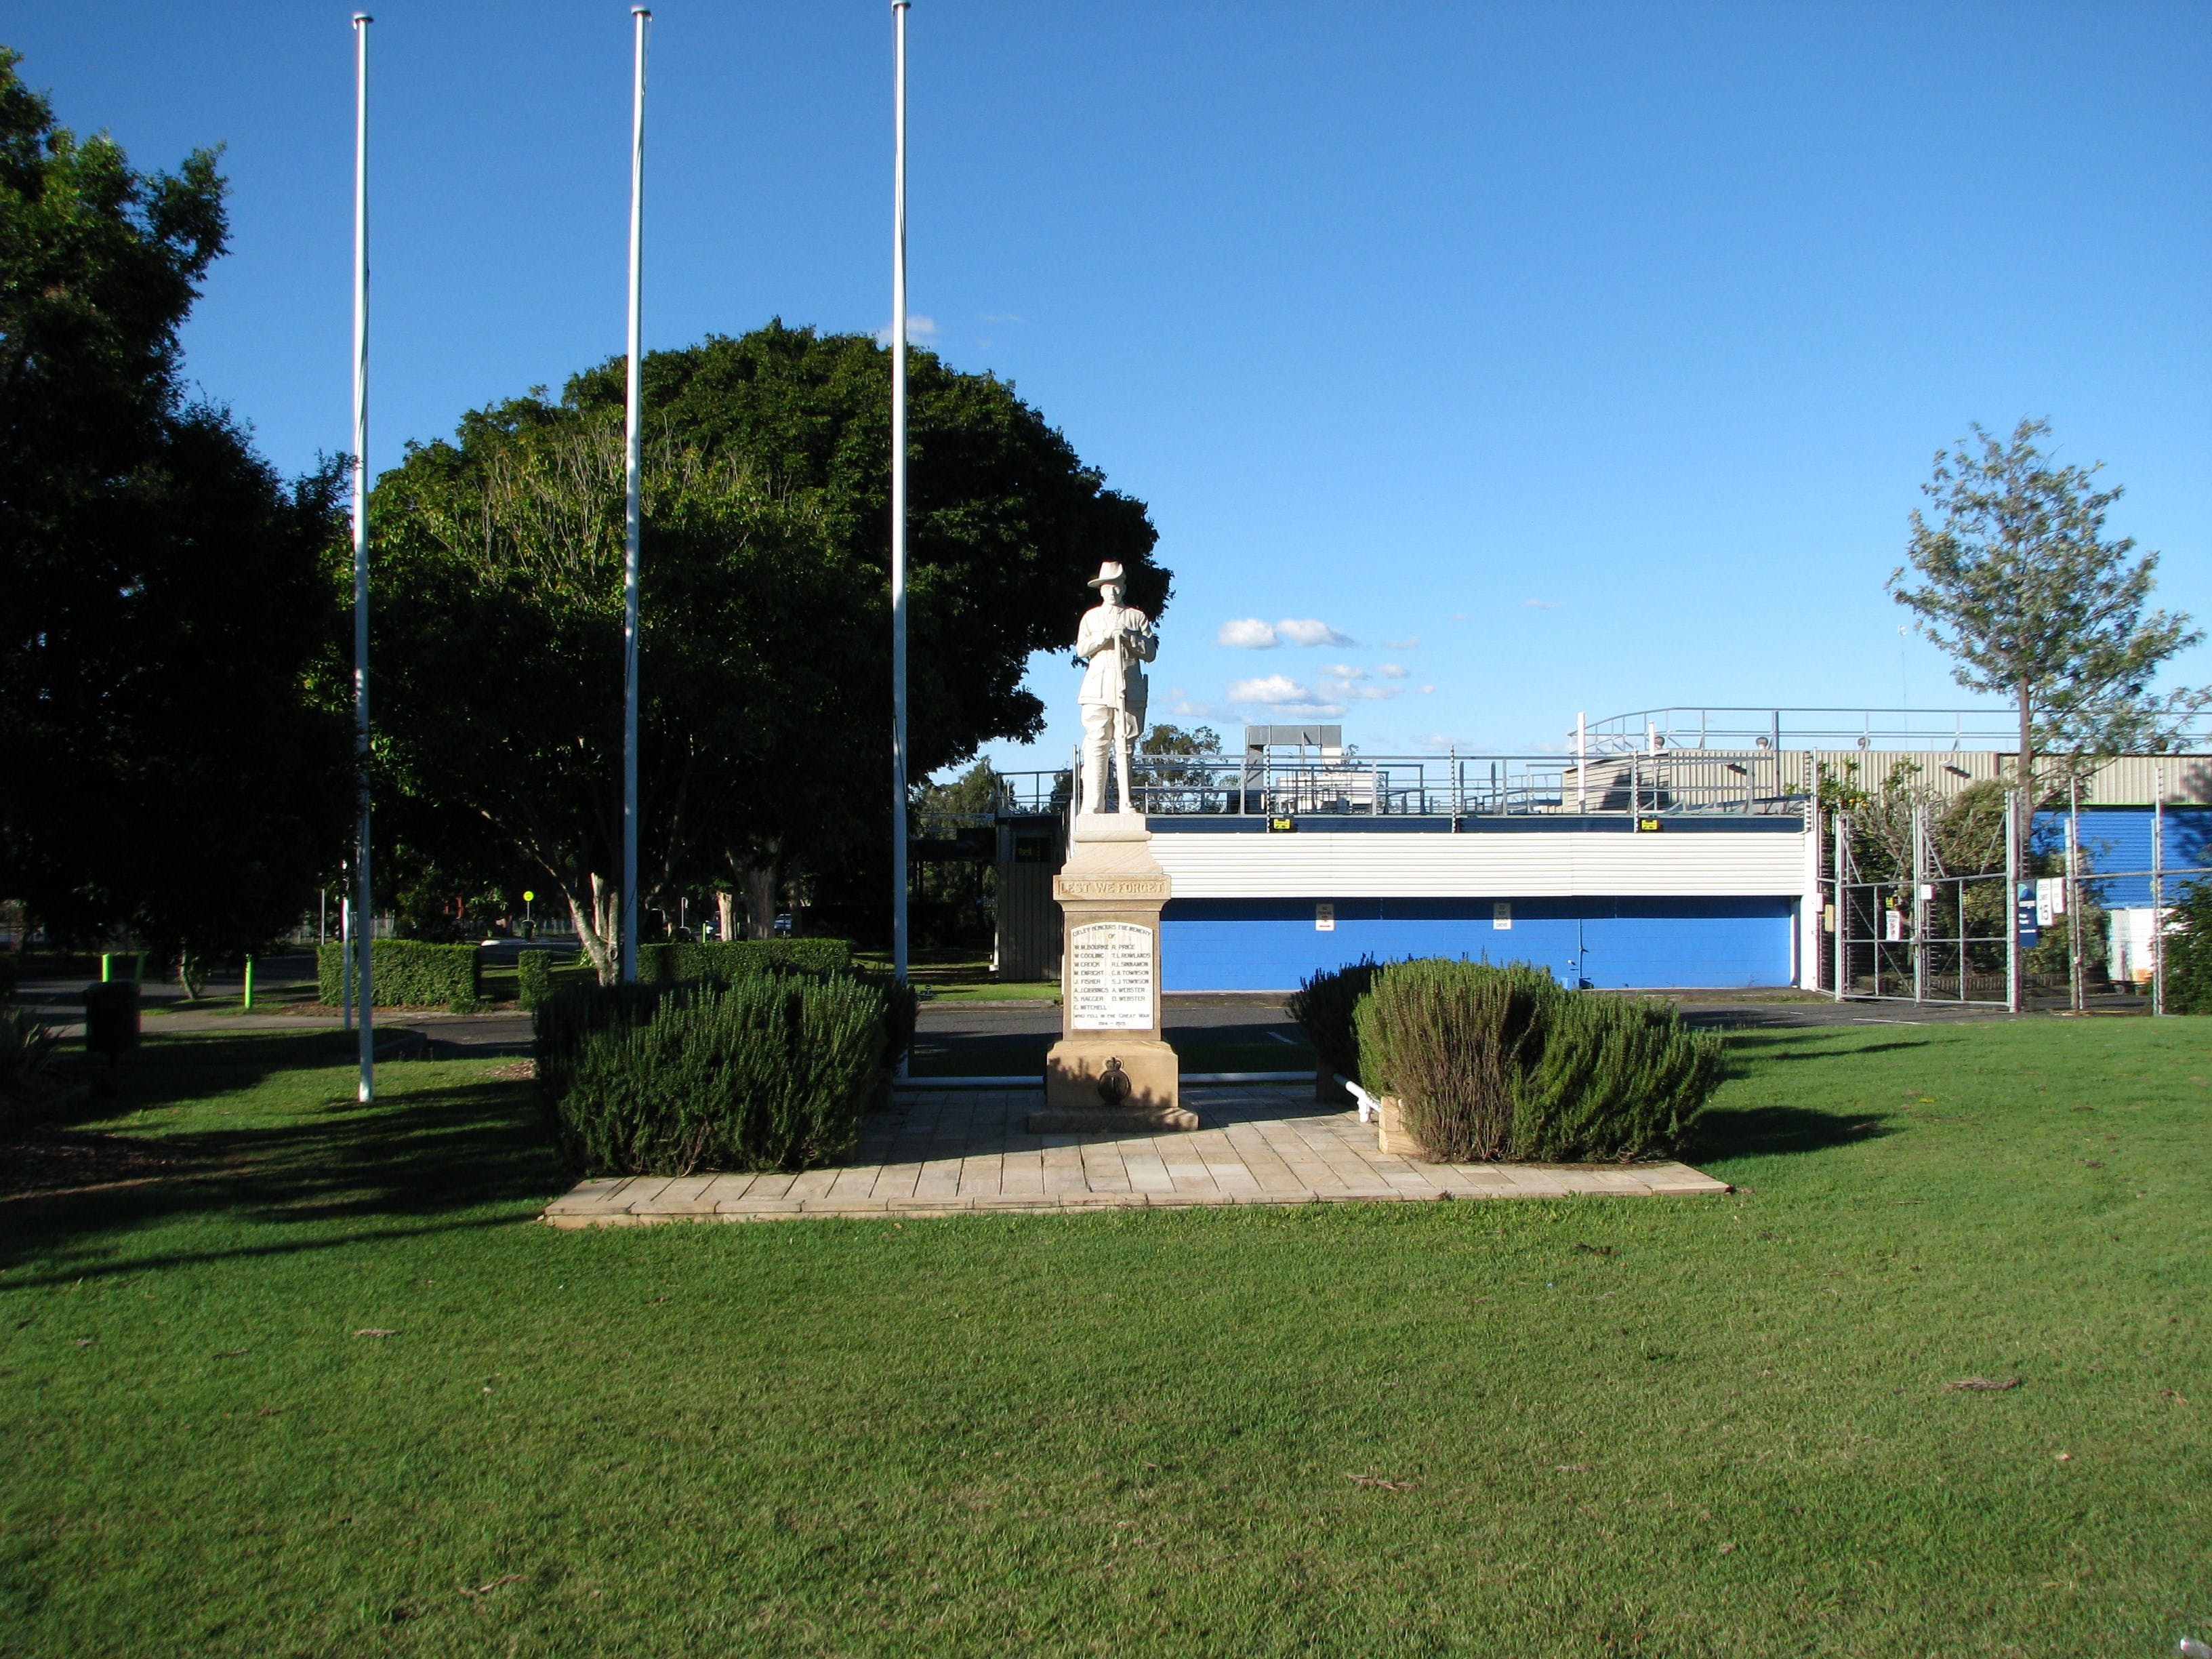 Oxley War Memorial - Find Attractions